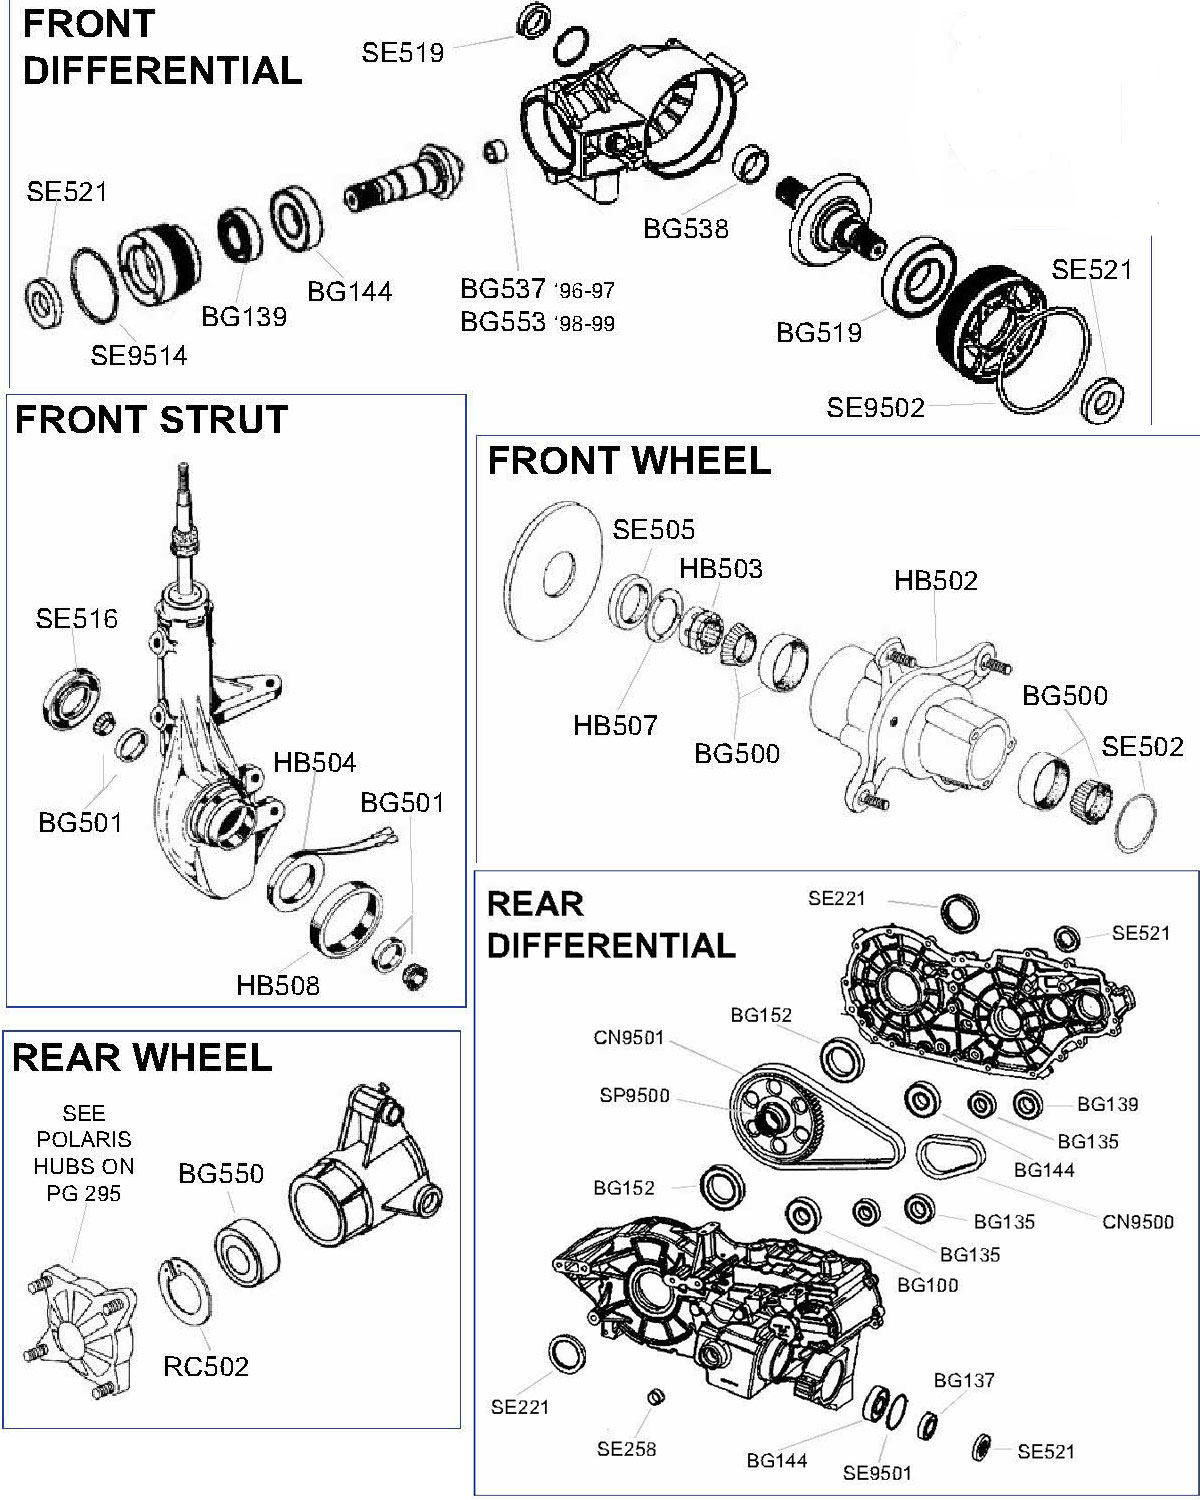 2003 Polaris Sportsman 500 Wiring Diagram Manual Of For Ranger 400 Transmission Get Pdf Ho